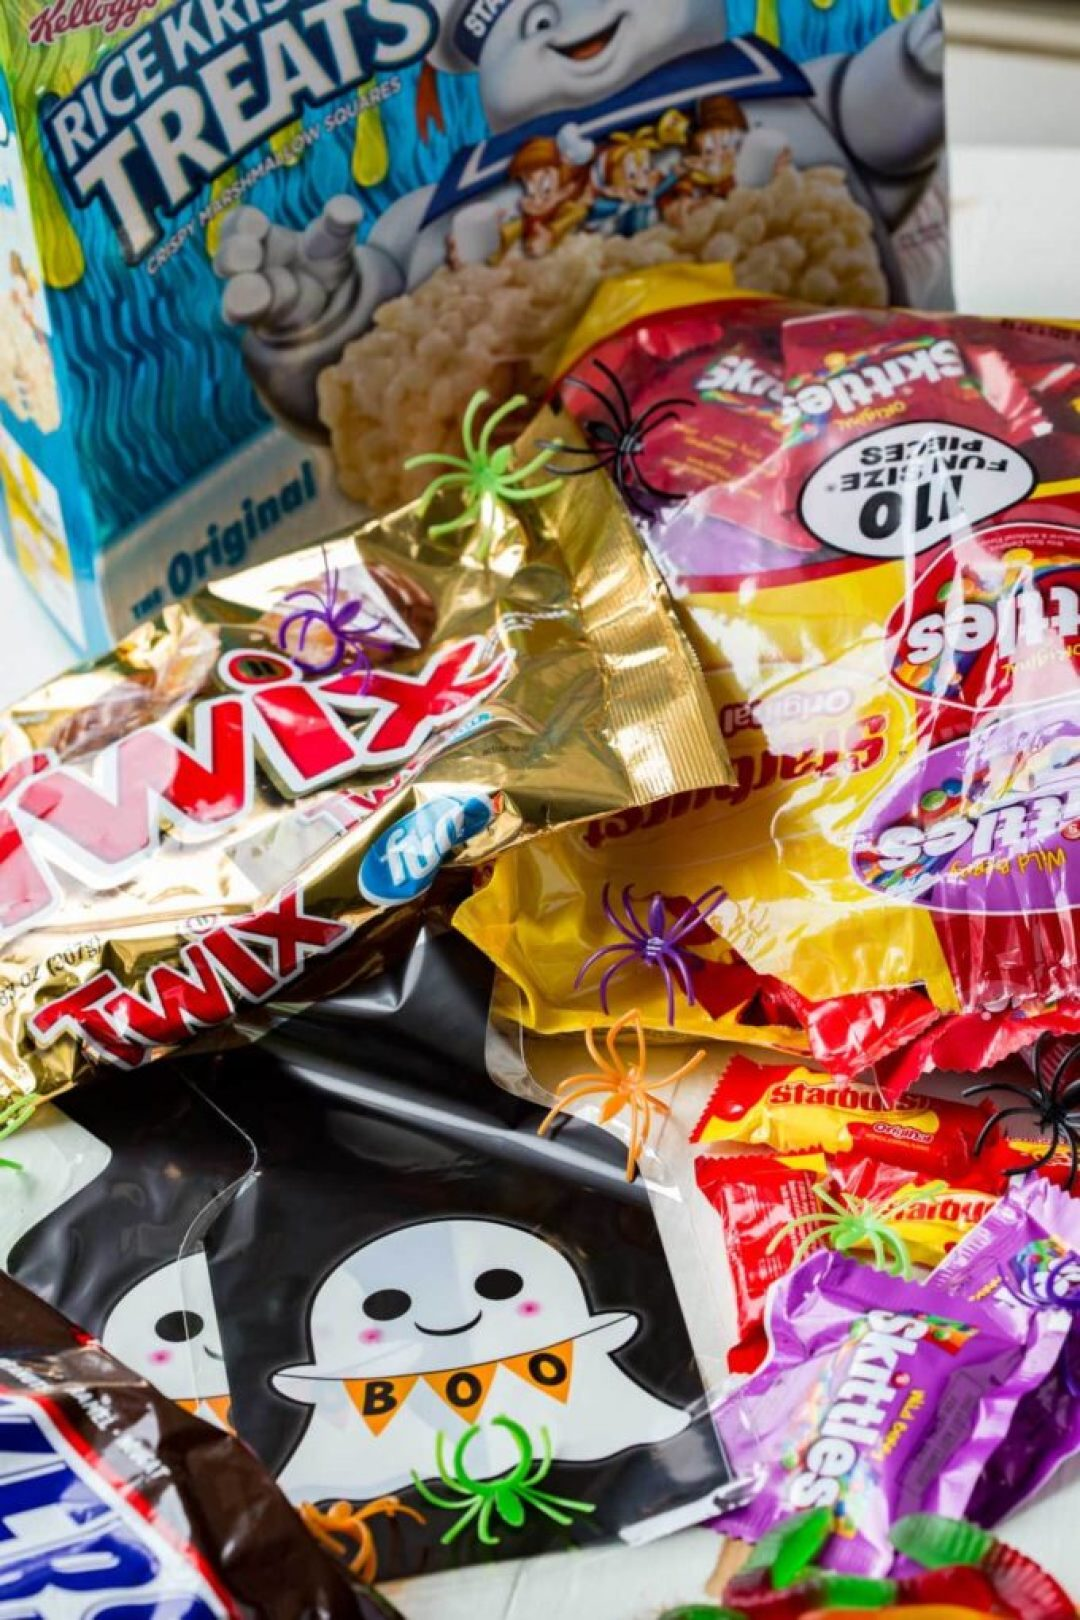 Candy from BOO it forward